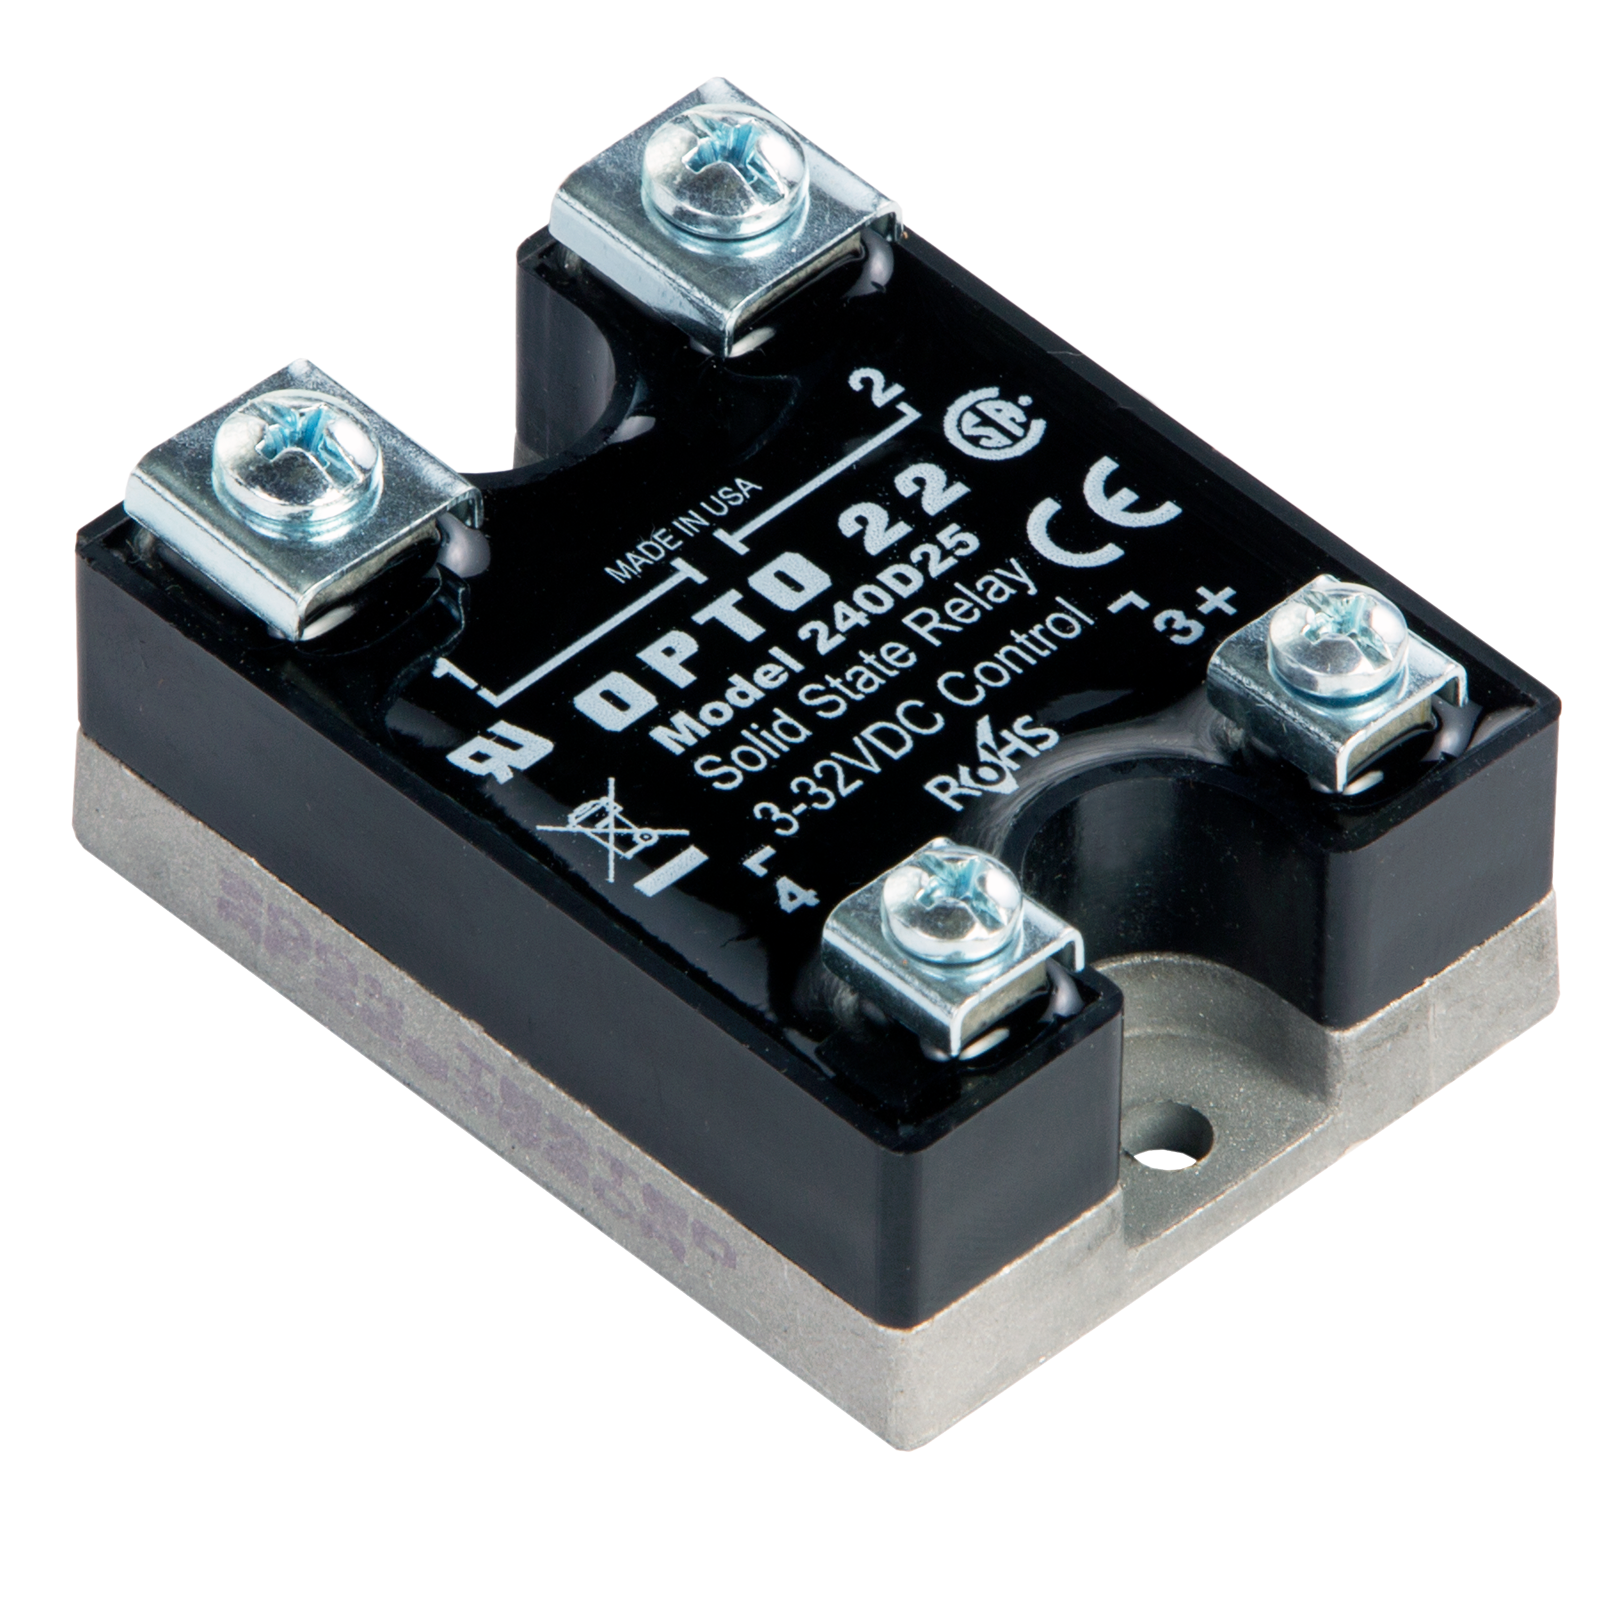 opto22 240d25 240 vac, 25 amp, dc control solid state relay (ssr)Ssr Control 240 Vac Schematic #13